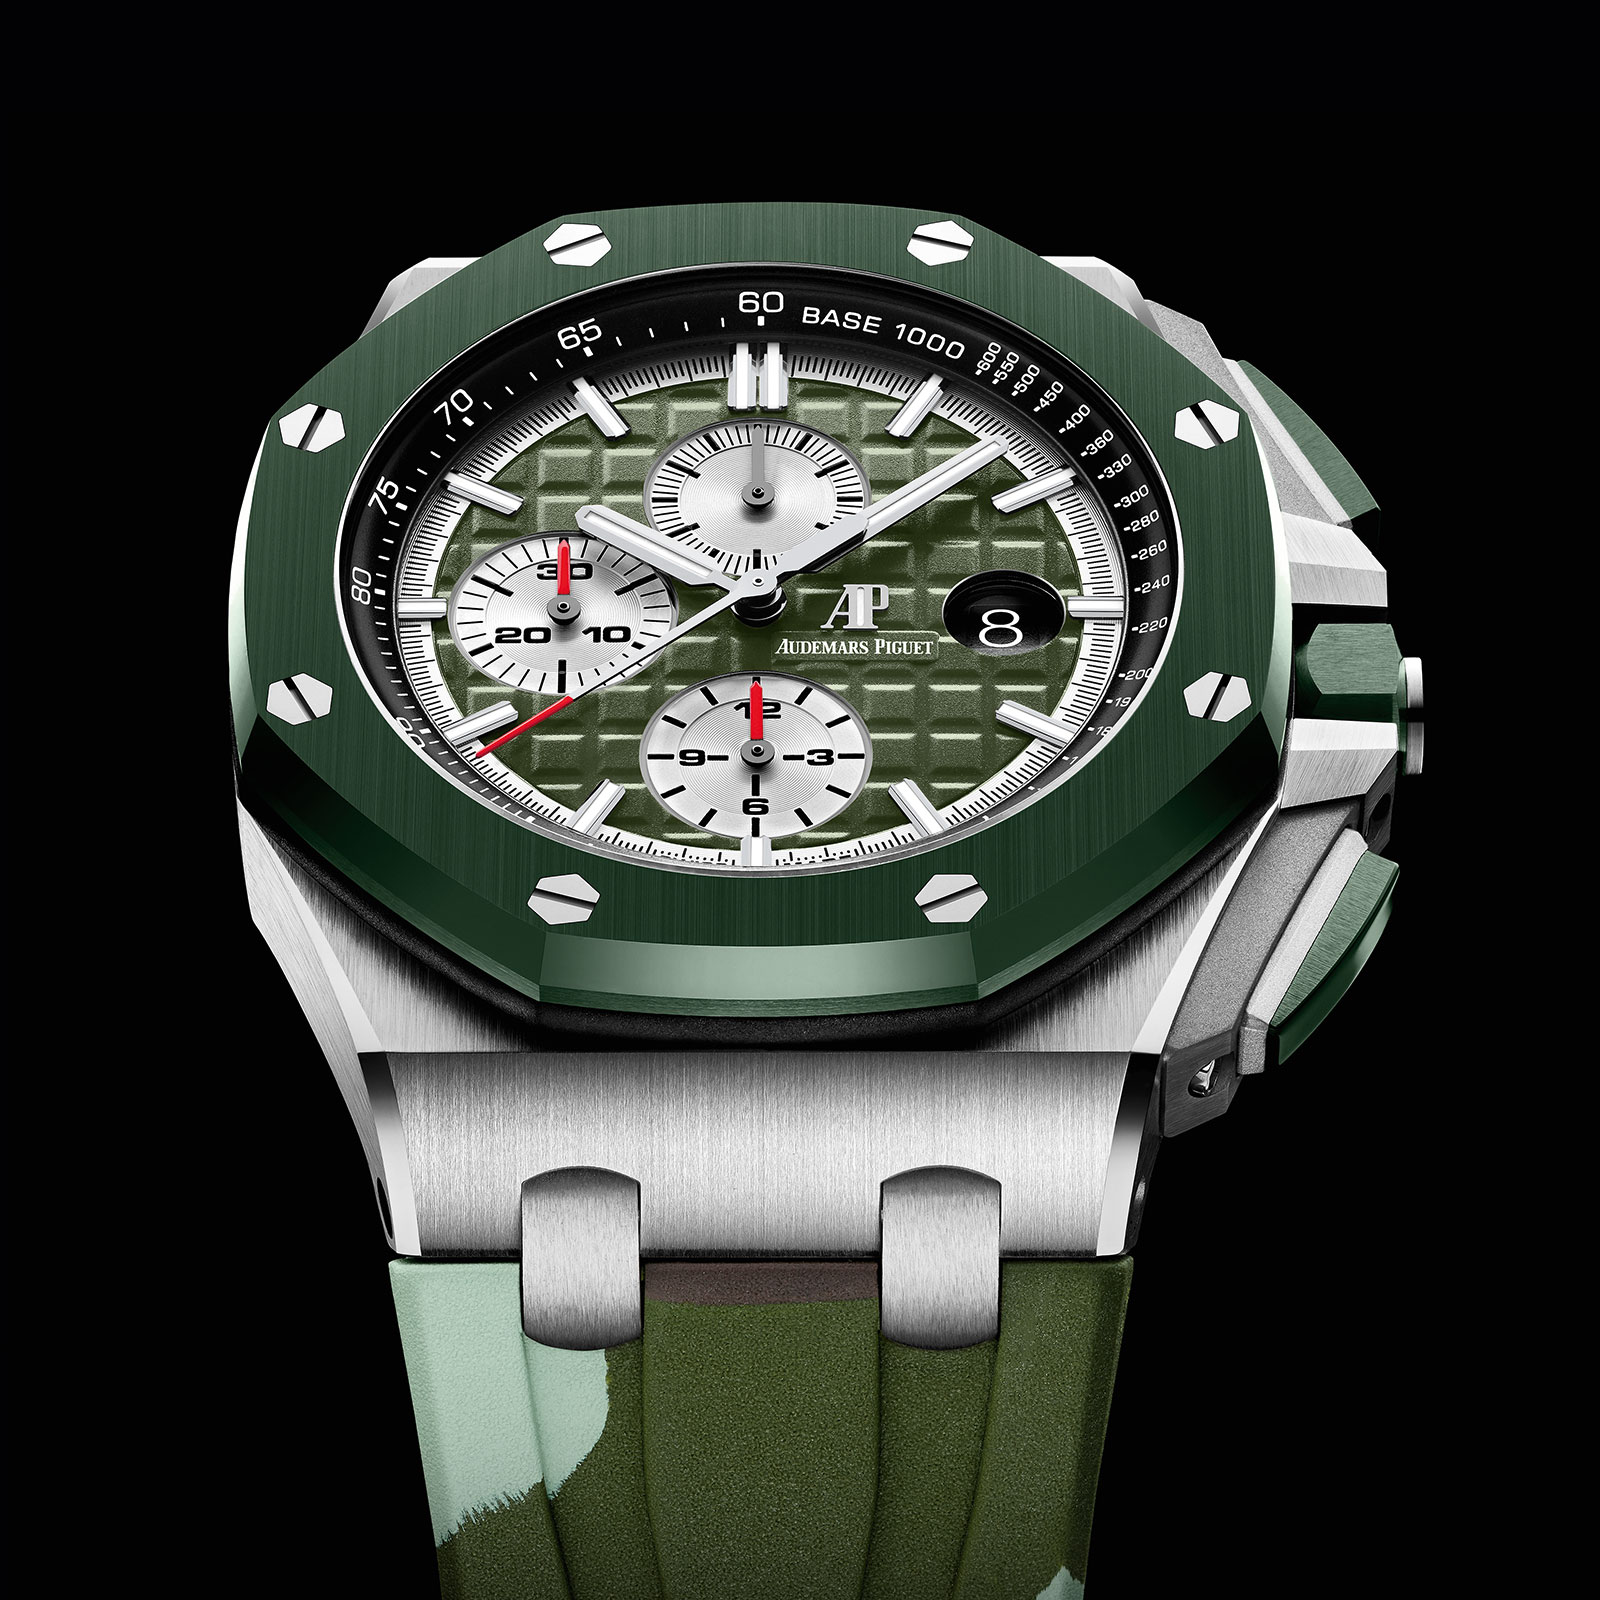 Sihh 2019 introducing the audemars piguet royal oak offshore chronograph camo sjx watches for Royal oak offshore vampire